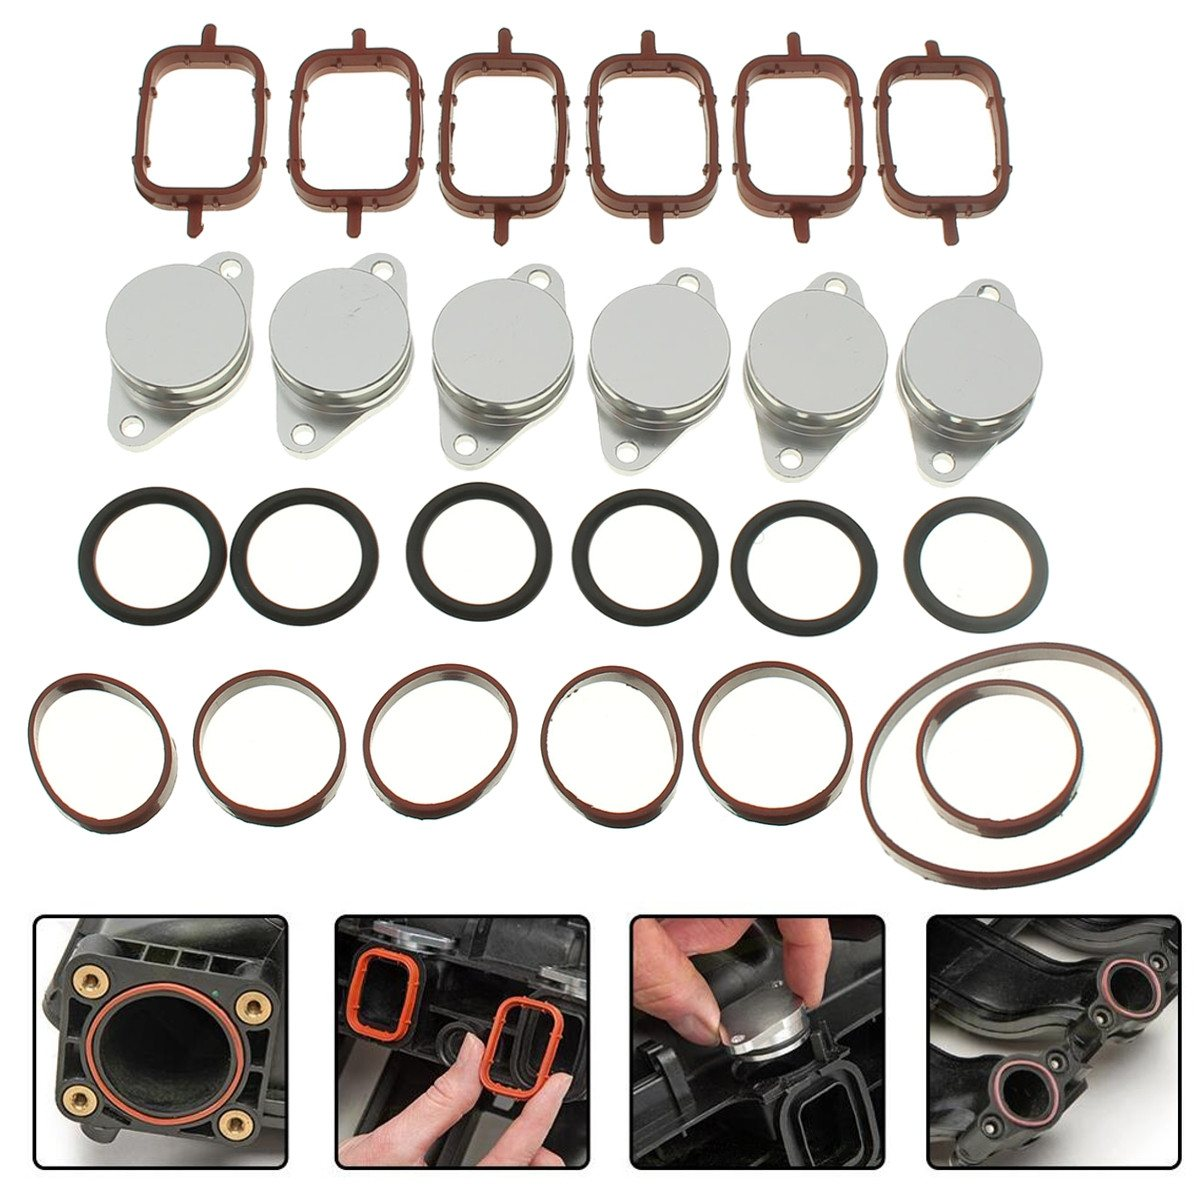 6x 32-33mm Swirl Flap Blank Bungs With Intake Manifold Gaskets For BMW E38 E39 E46 E53